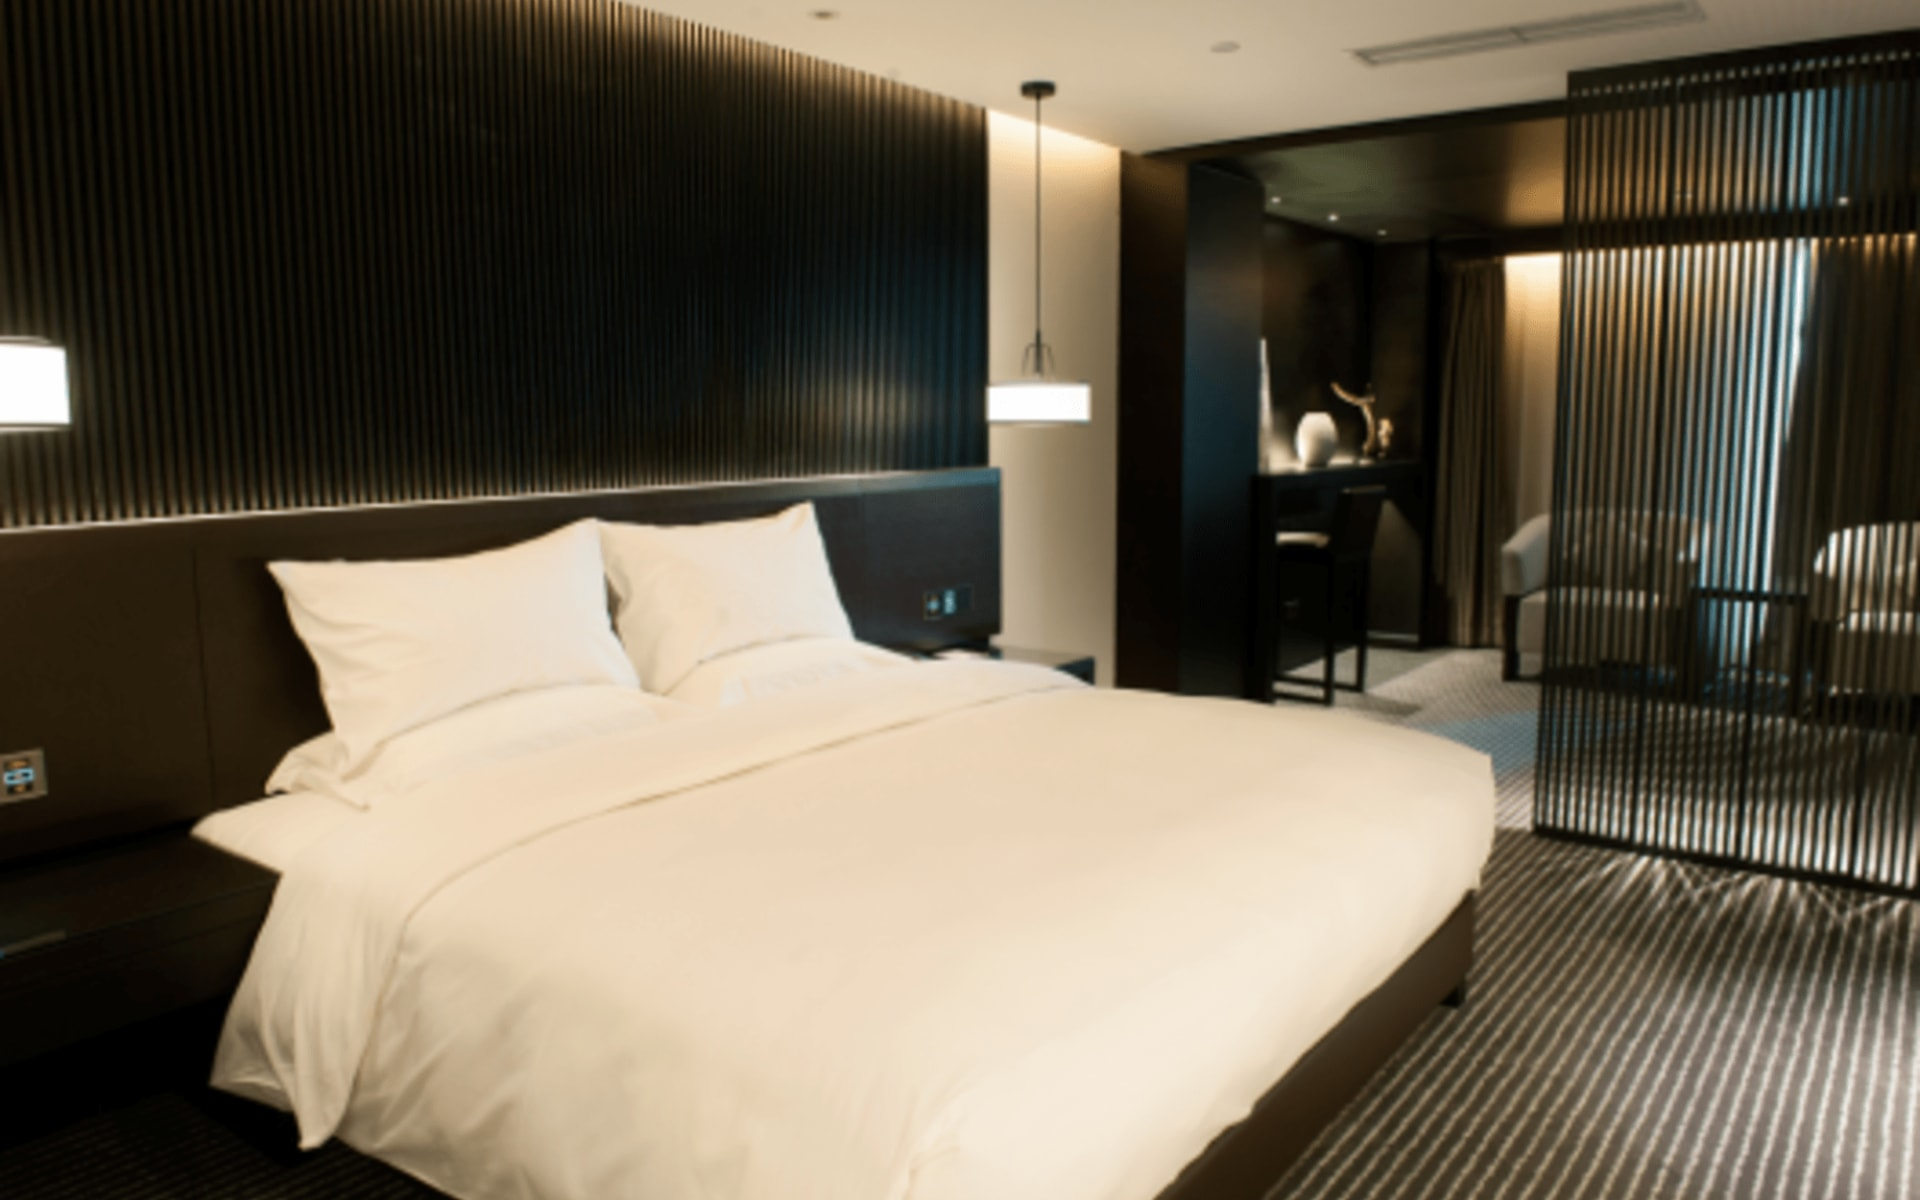 Eastern House Boutique Hotel in Xian: Eastern House Hotel Zimmer